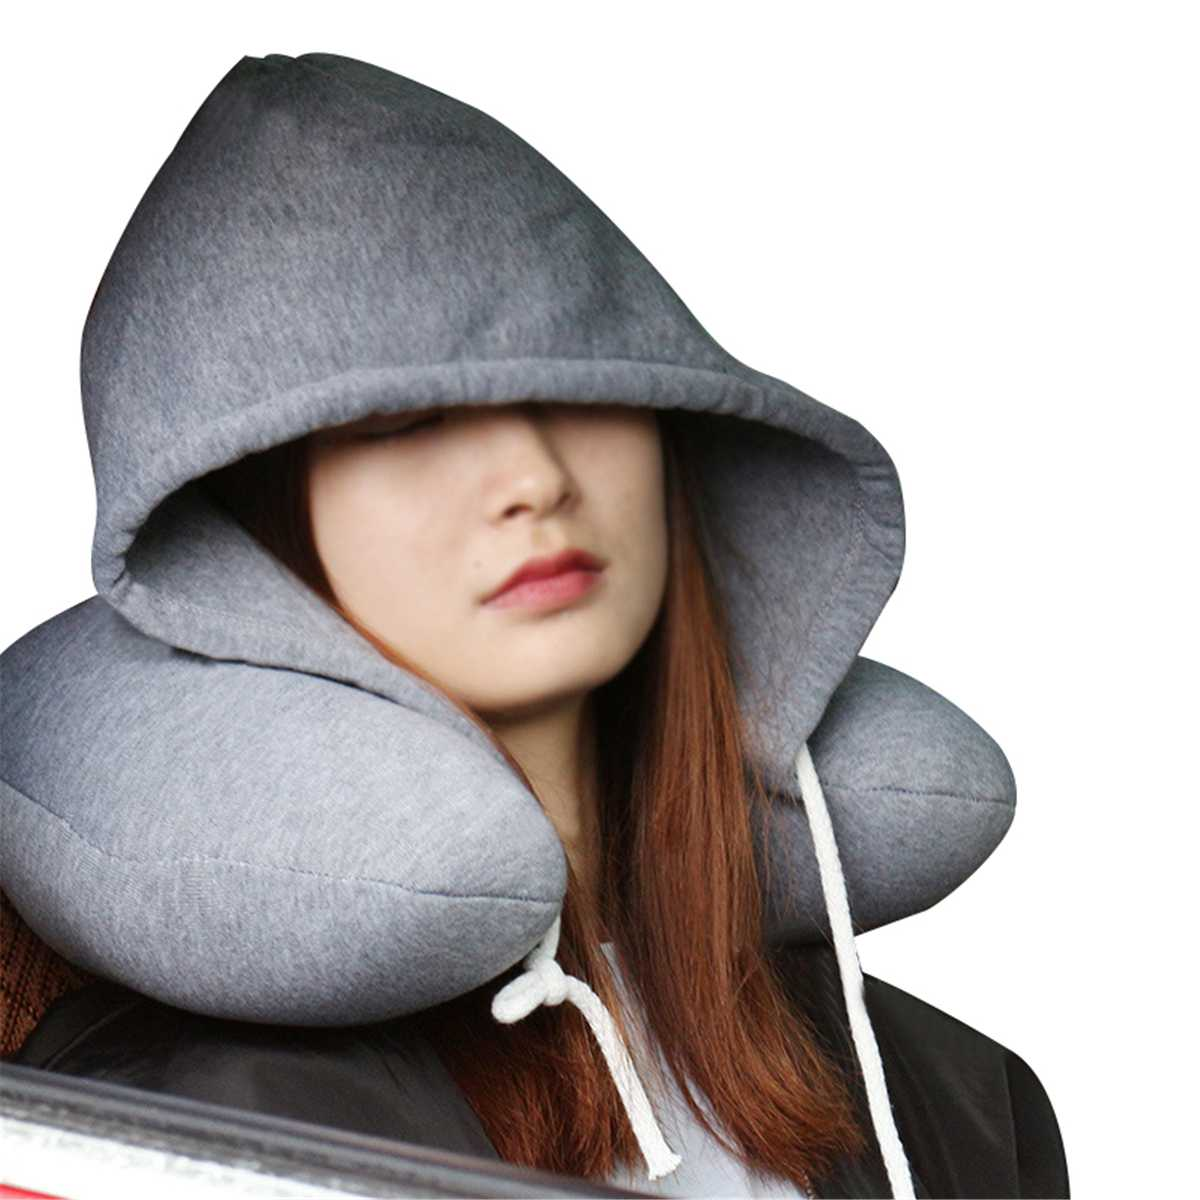 Travel Accessories Cotton U Shaped Pillow Hat Solid Color Travel Neck Pillow With Cap For Men Women Sleepy Pillow Car Airplane